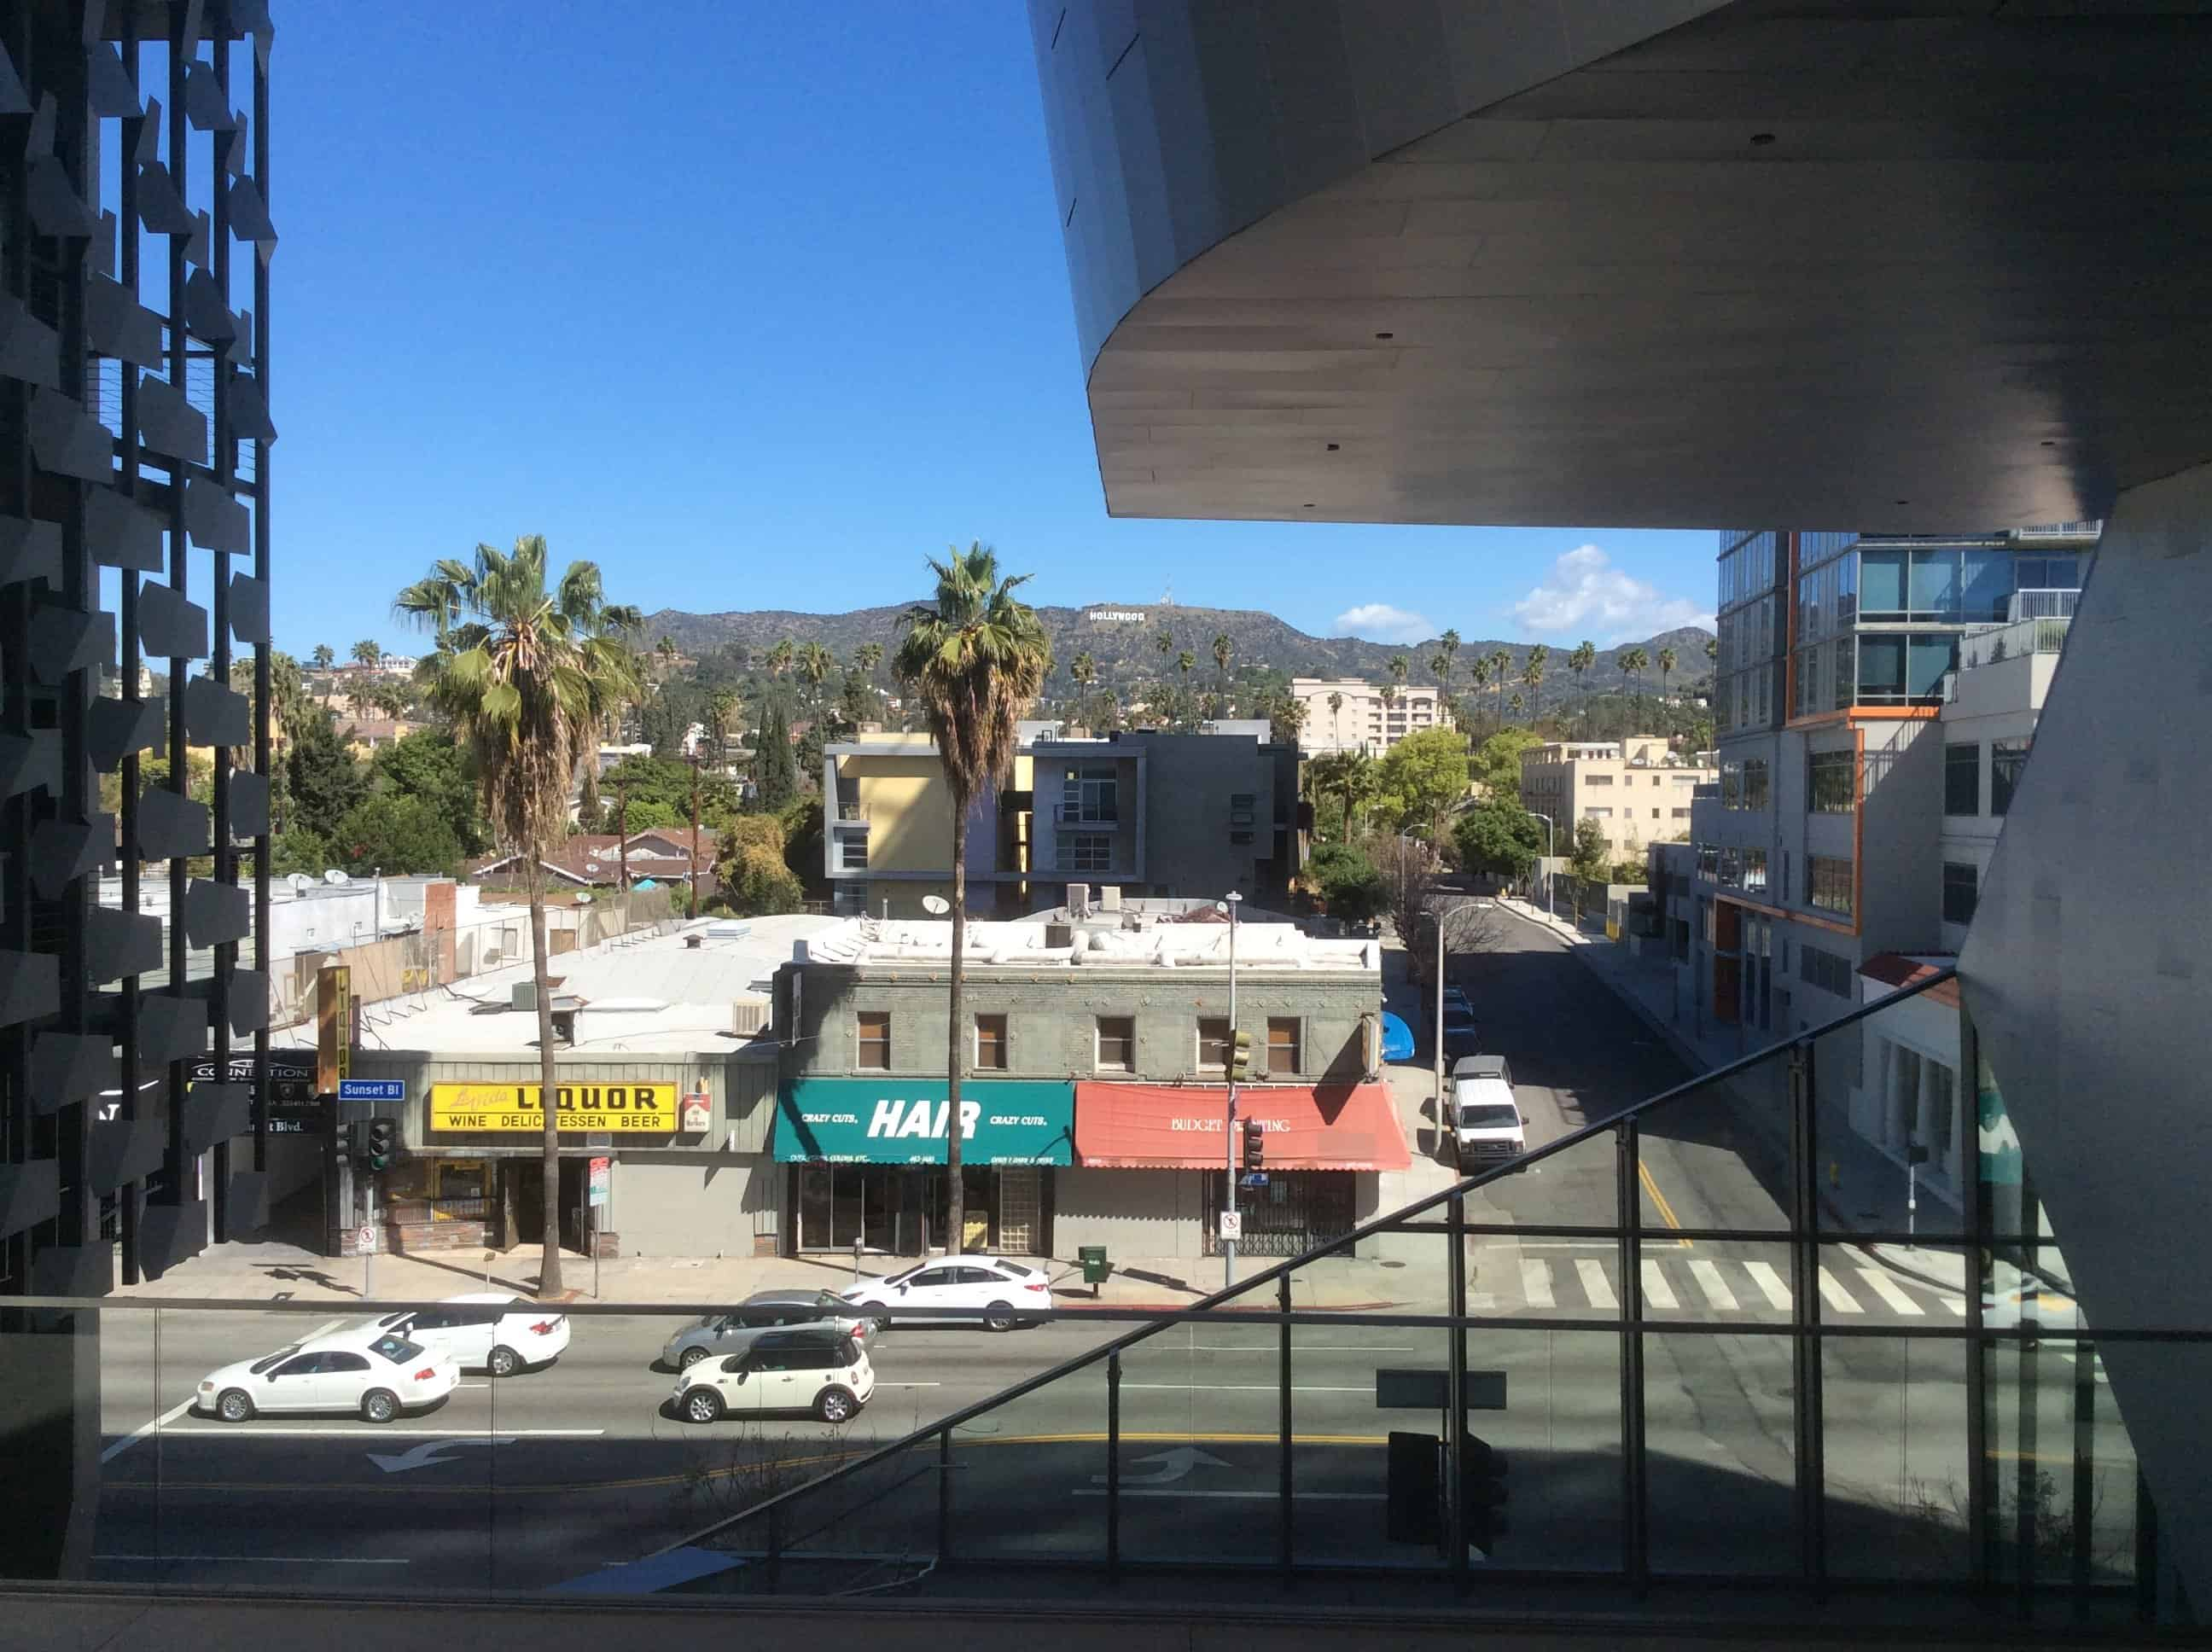 Magellan College Counseling - Emerson College LA campus Hollywood sign 2